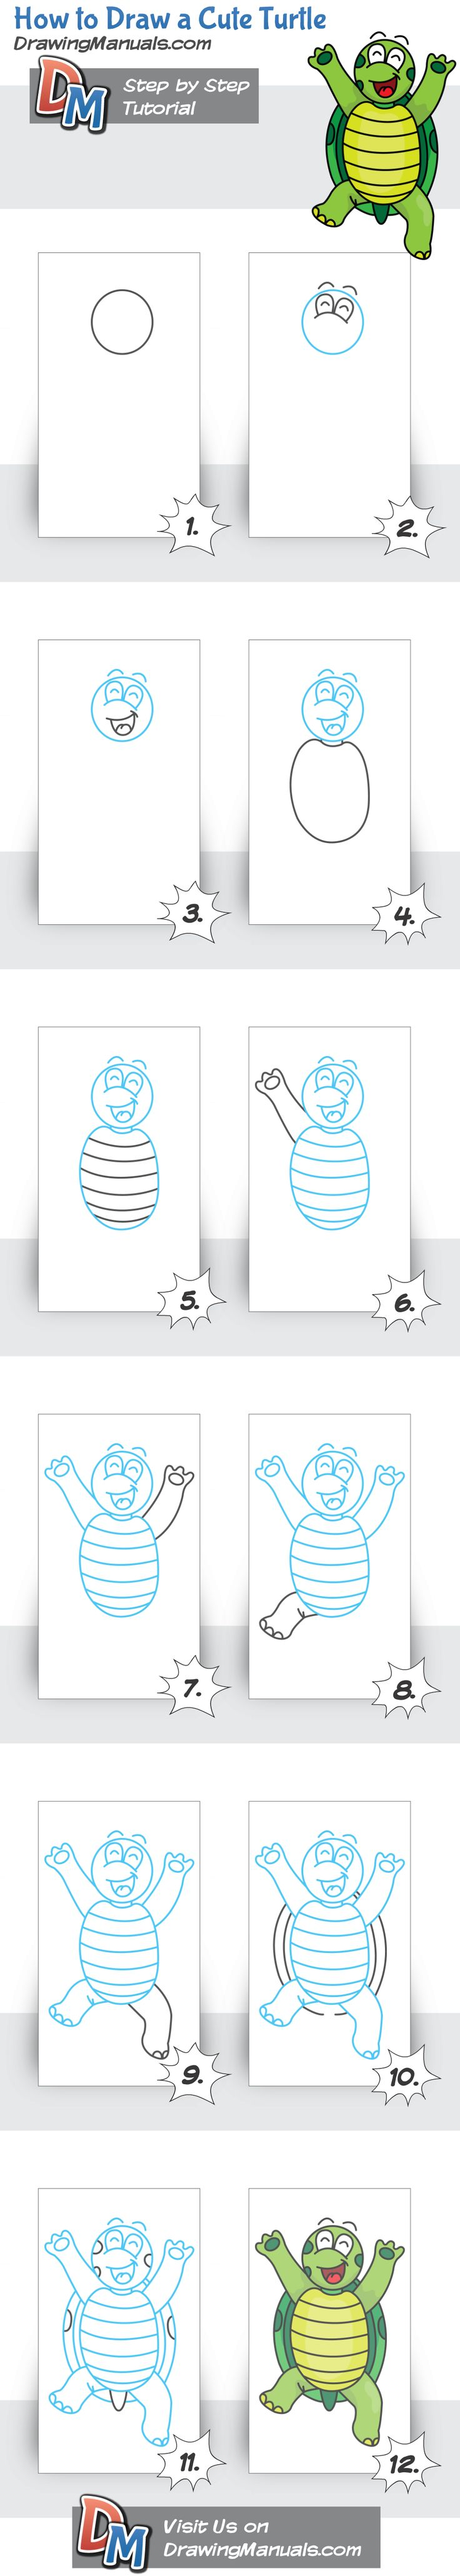 How to draw a cute turtle for kids step by step doodles for How to draw doodles step by step